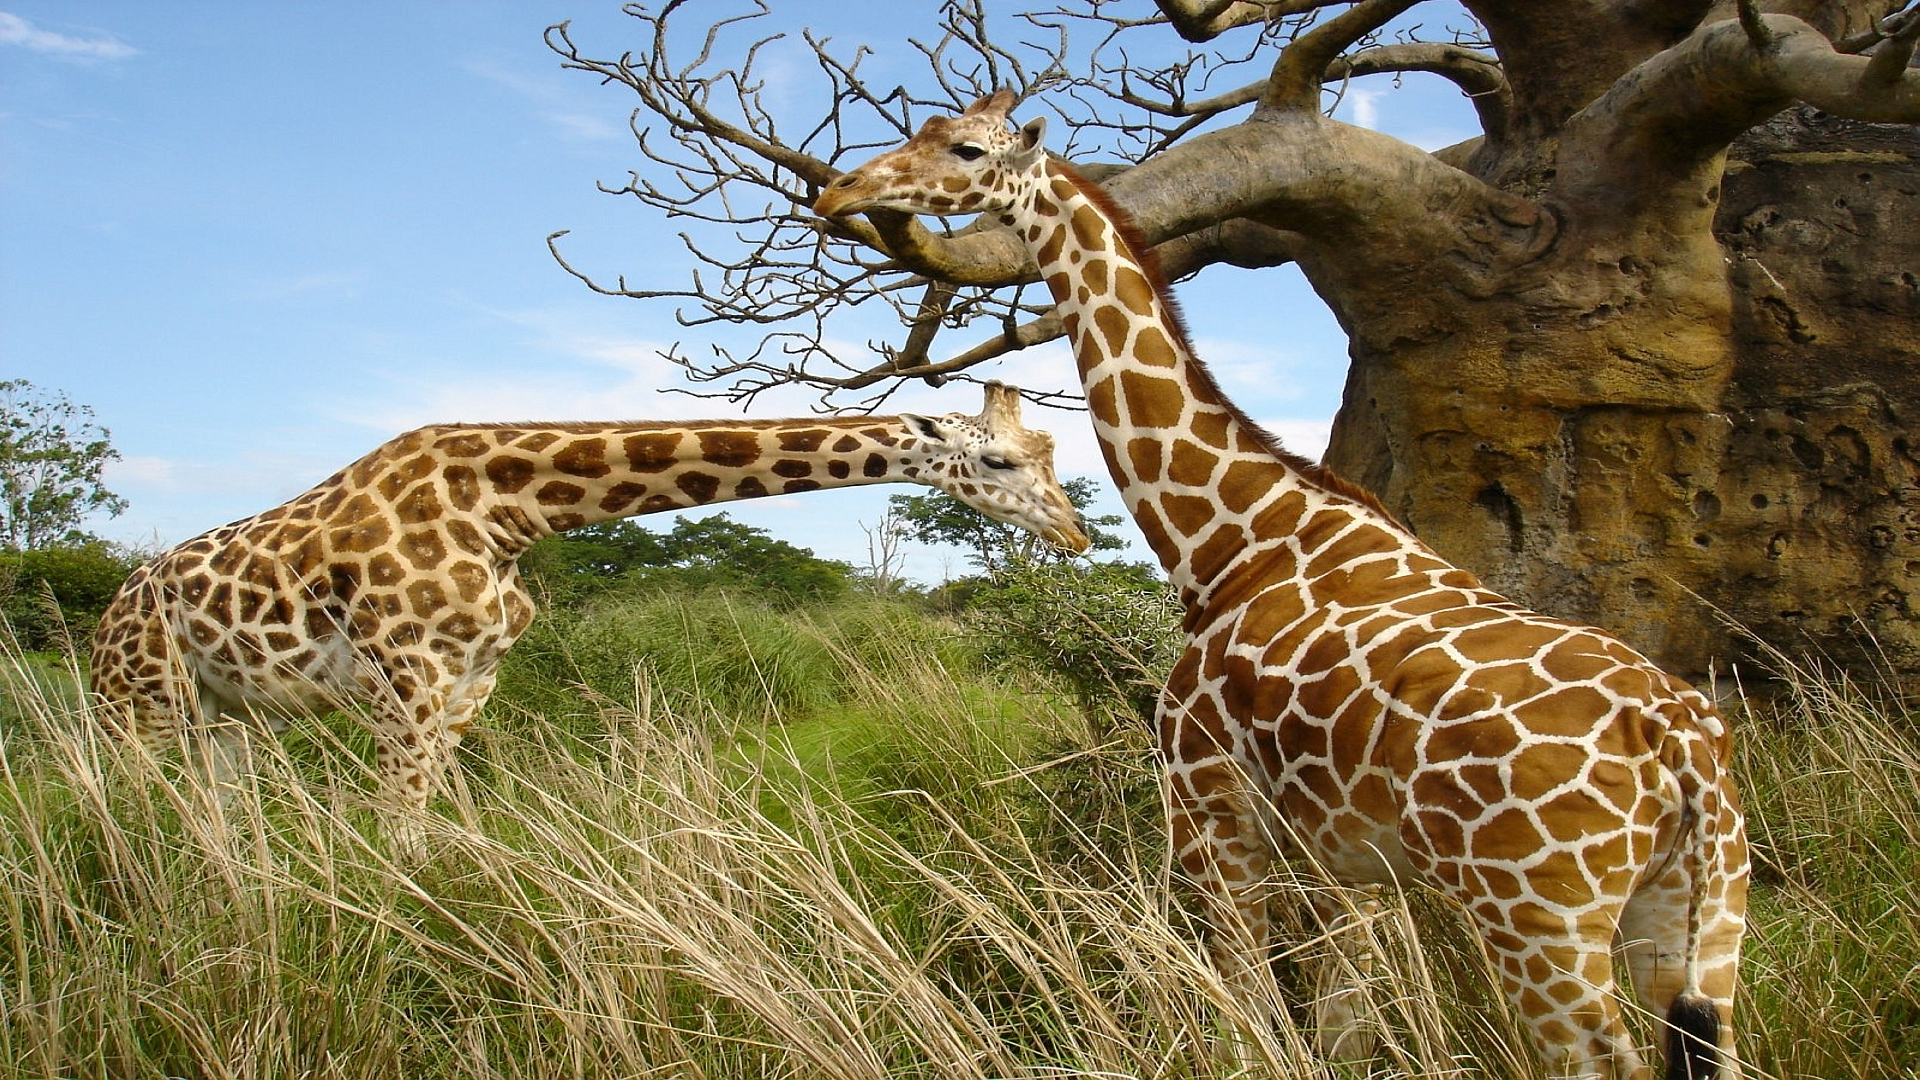 animal-pictures-Girrafe-Animal-Unique-Nature-HD-wallpaper-wp3402412